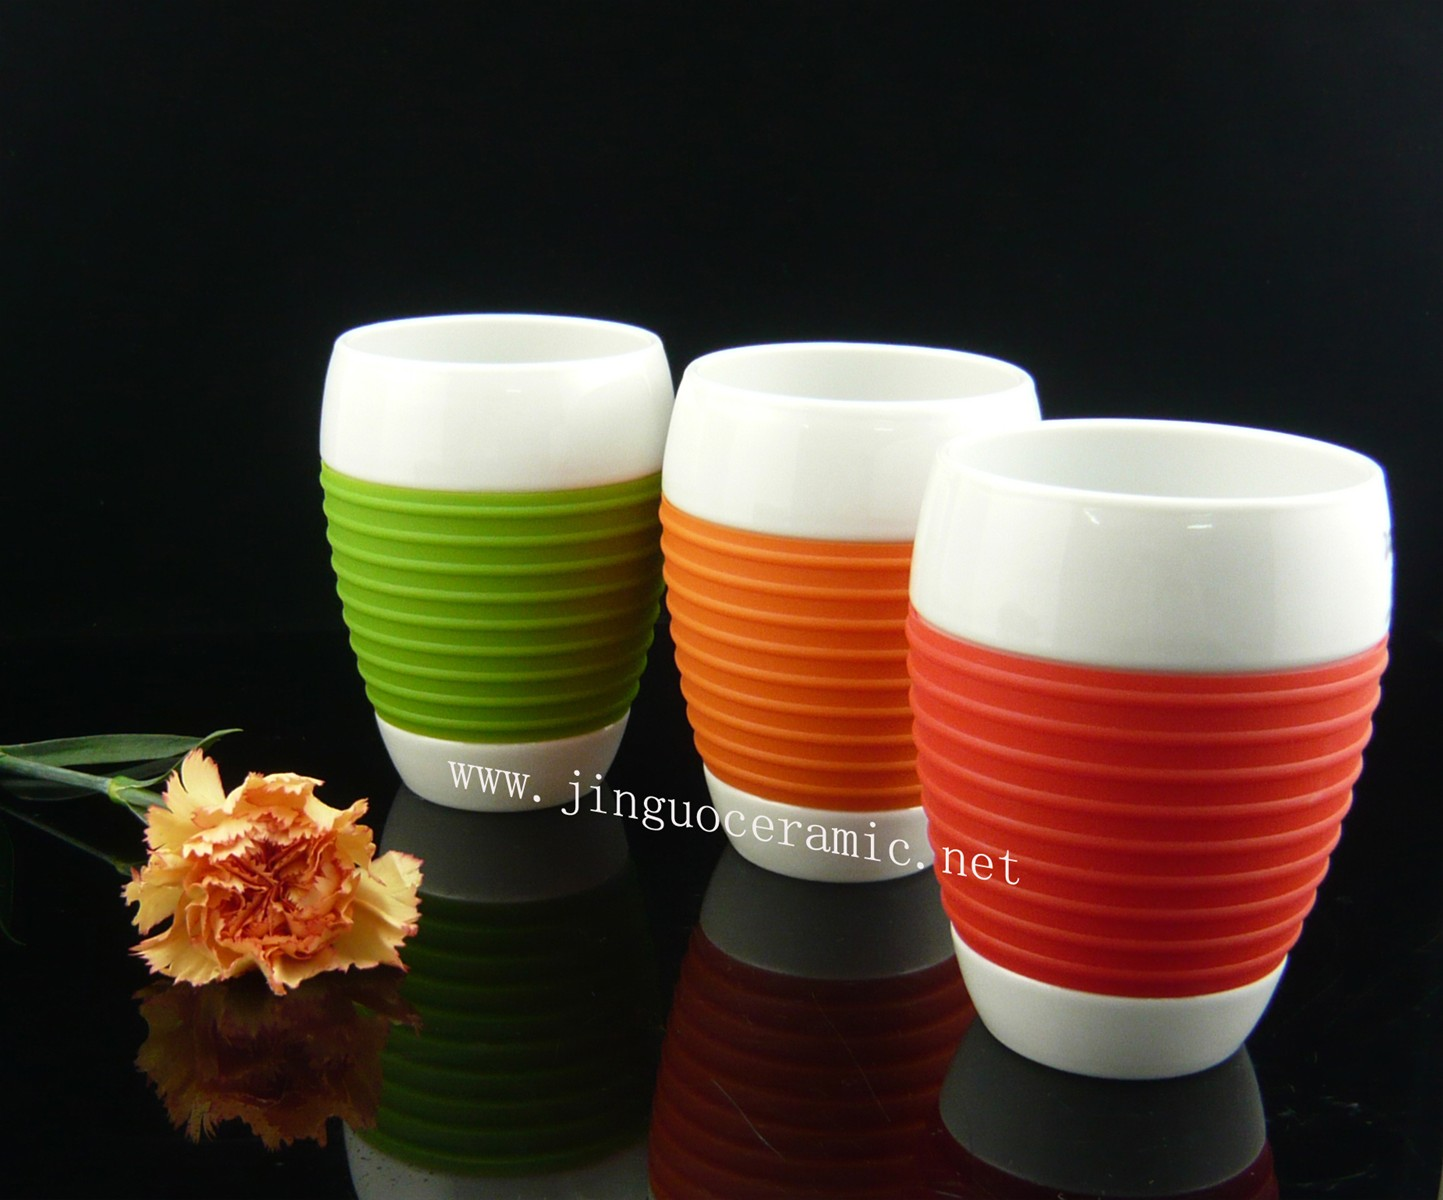 Ceramic Porcelain Coffee Cup with Silicone Sleeve